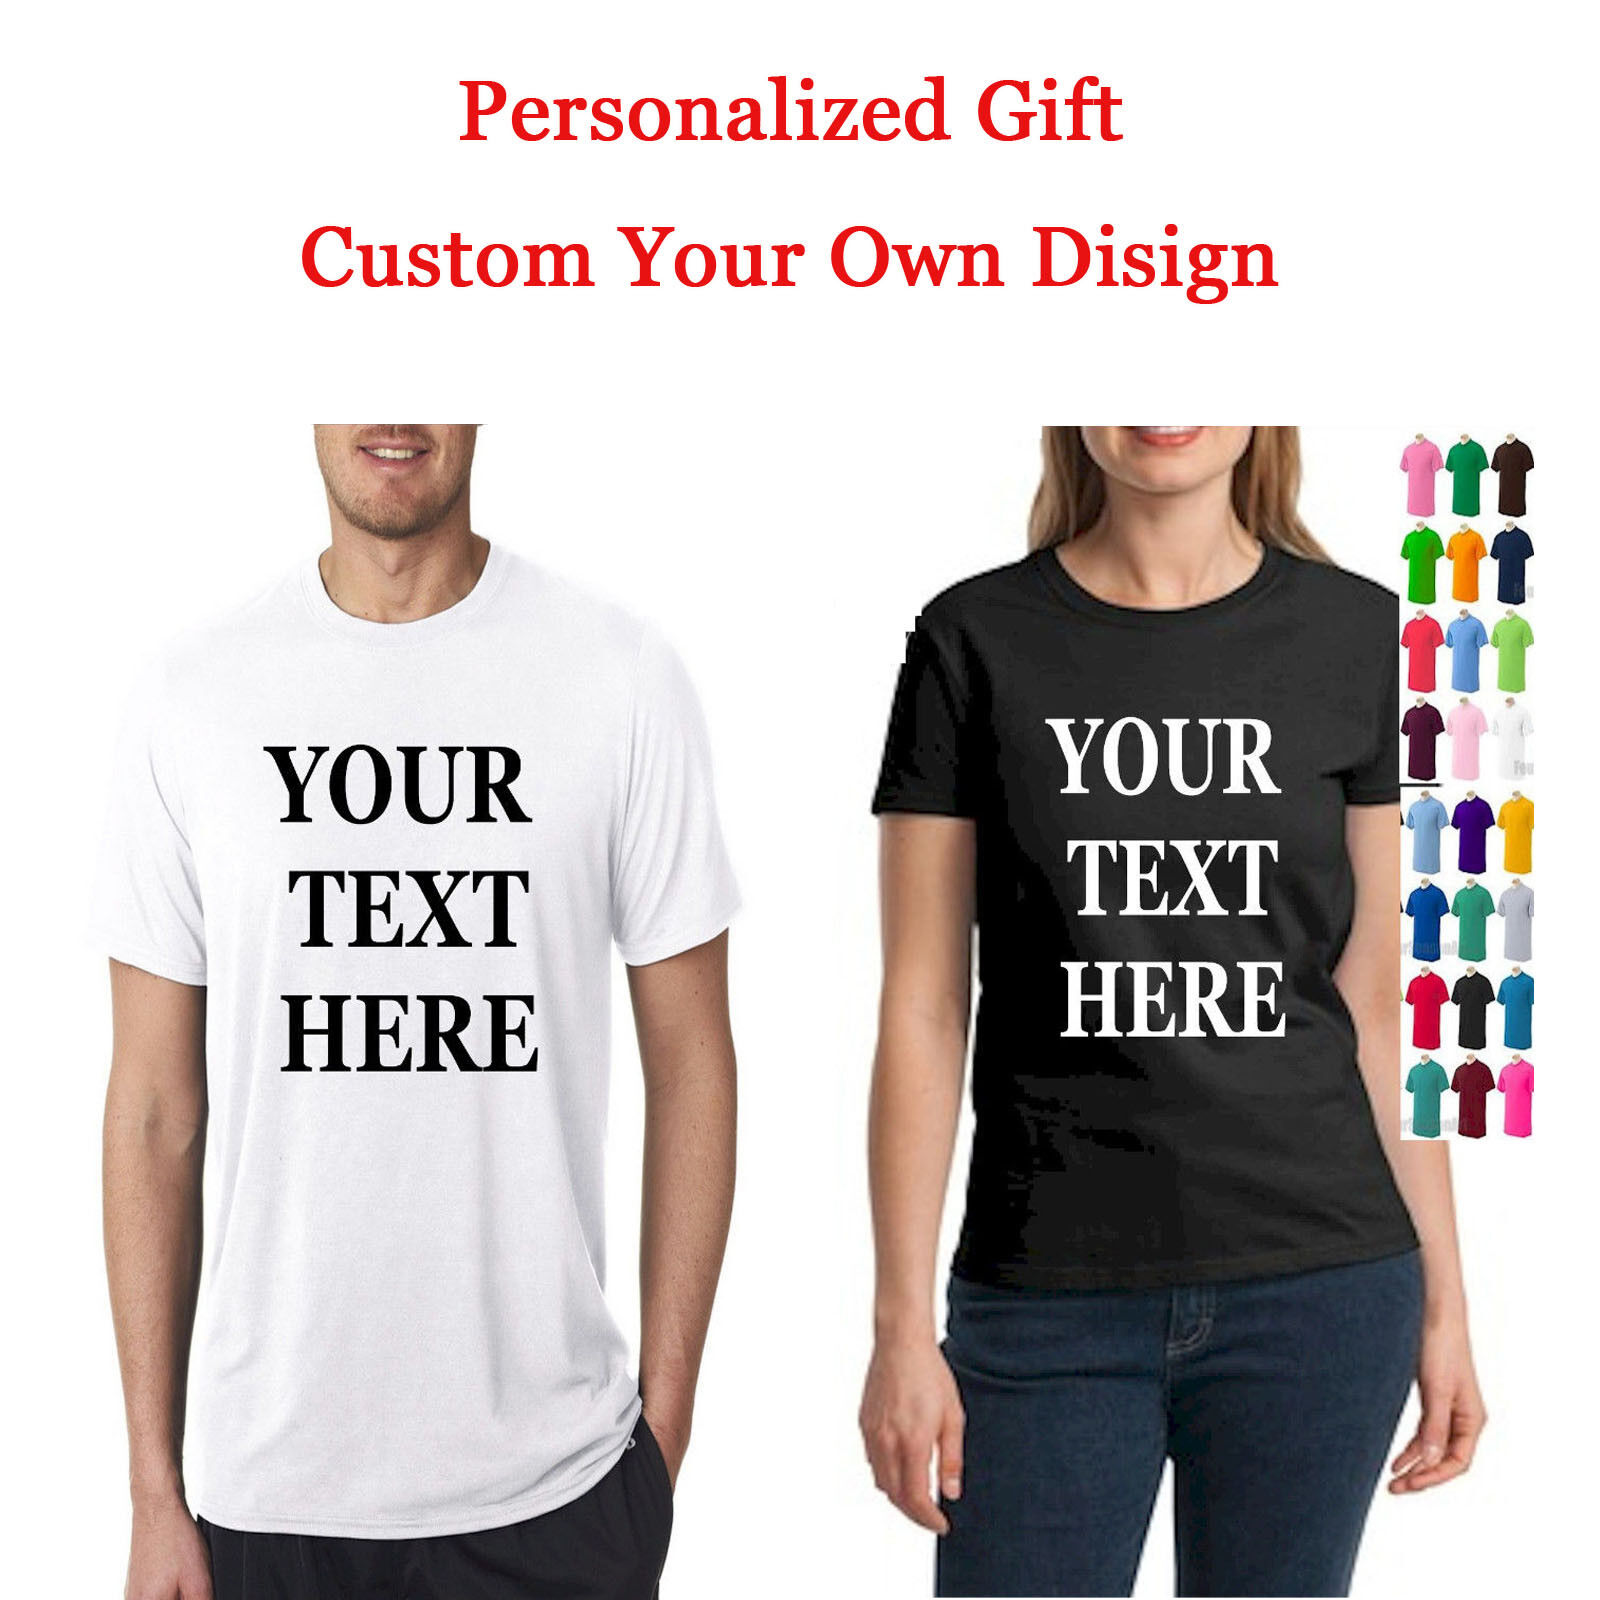 6e5767ad5533 Details about Personalized Custom Men Women T-Shirt Printing Your Photo Text  Logo Couple Gift